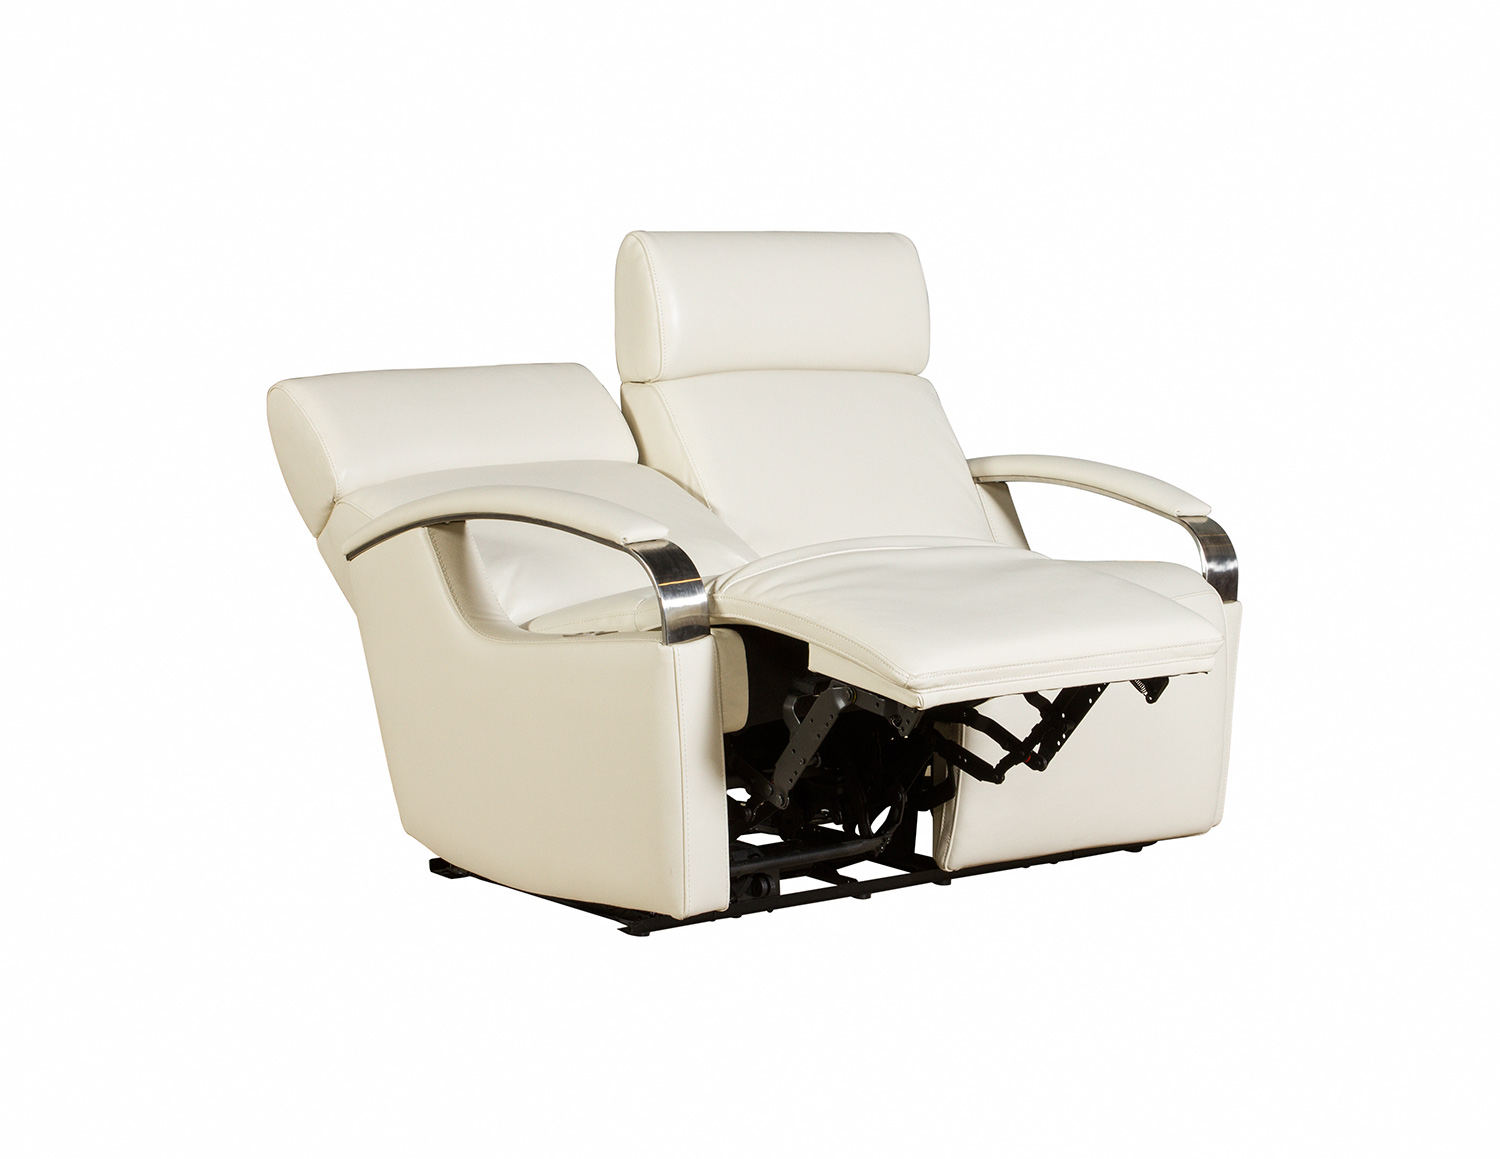 Barcalounger Cosmo Power Reclining Loveseat with Power Head Rests - Cashmere White/Leather Match